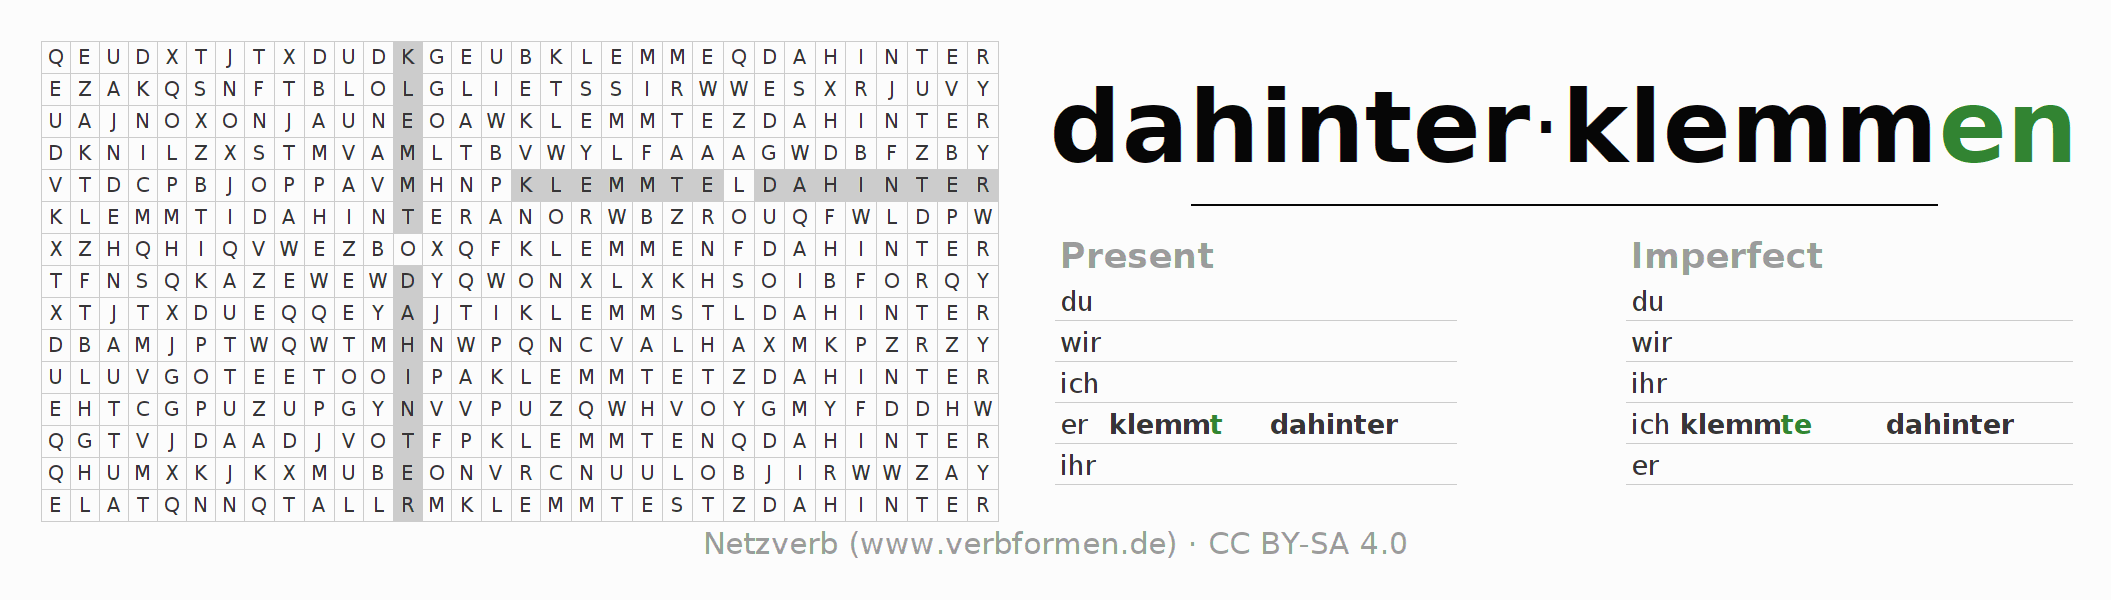 Word search puzzle for the conjugation of the verb dahinterklemmen